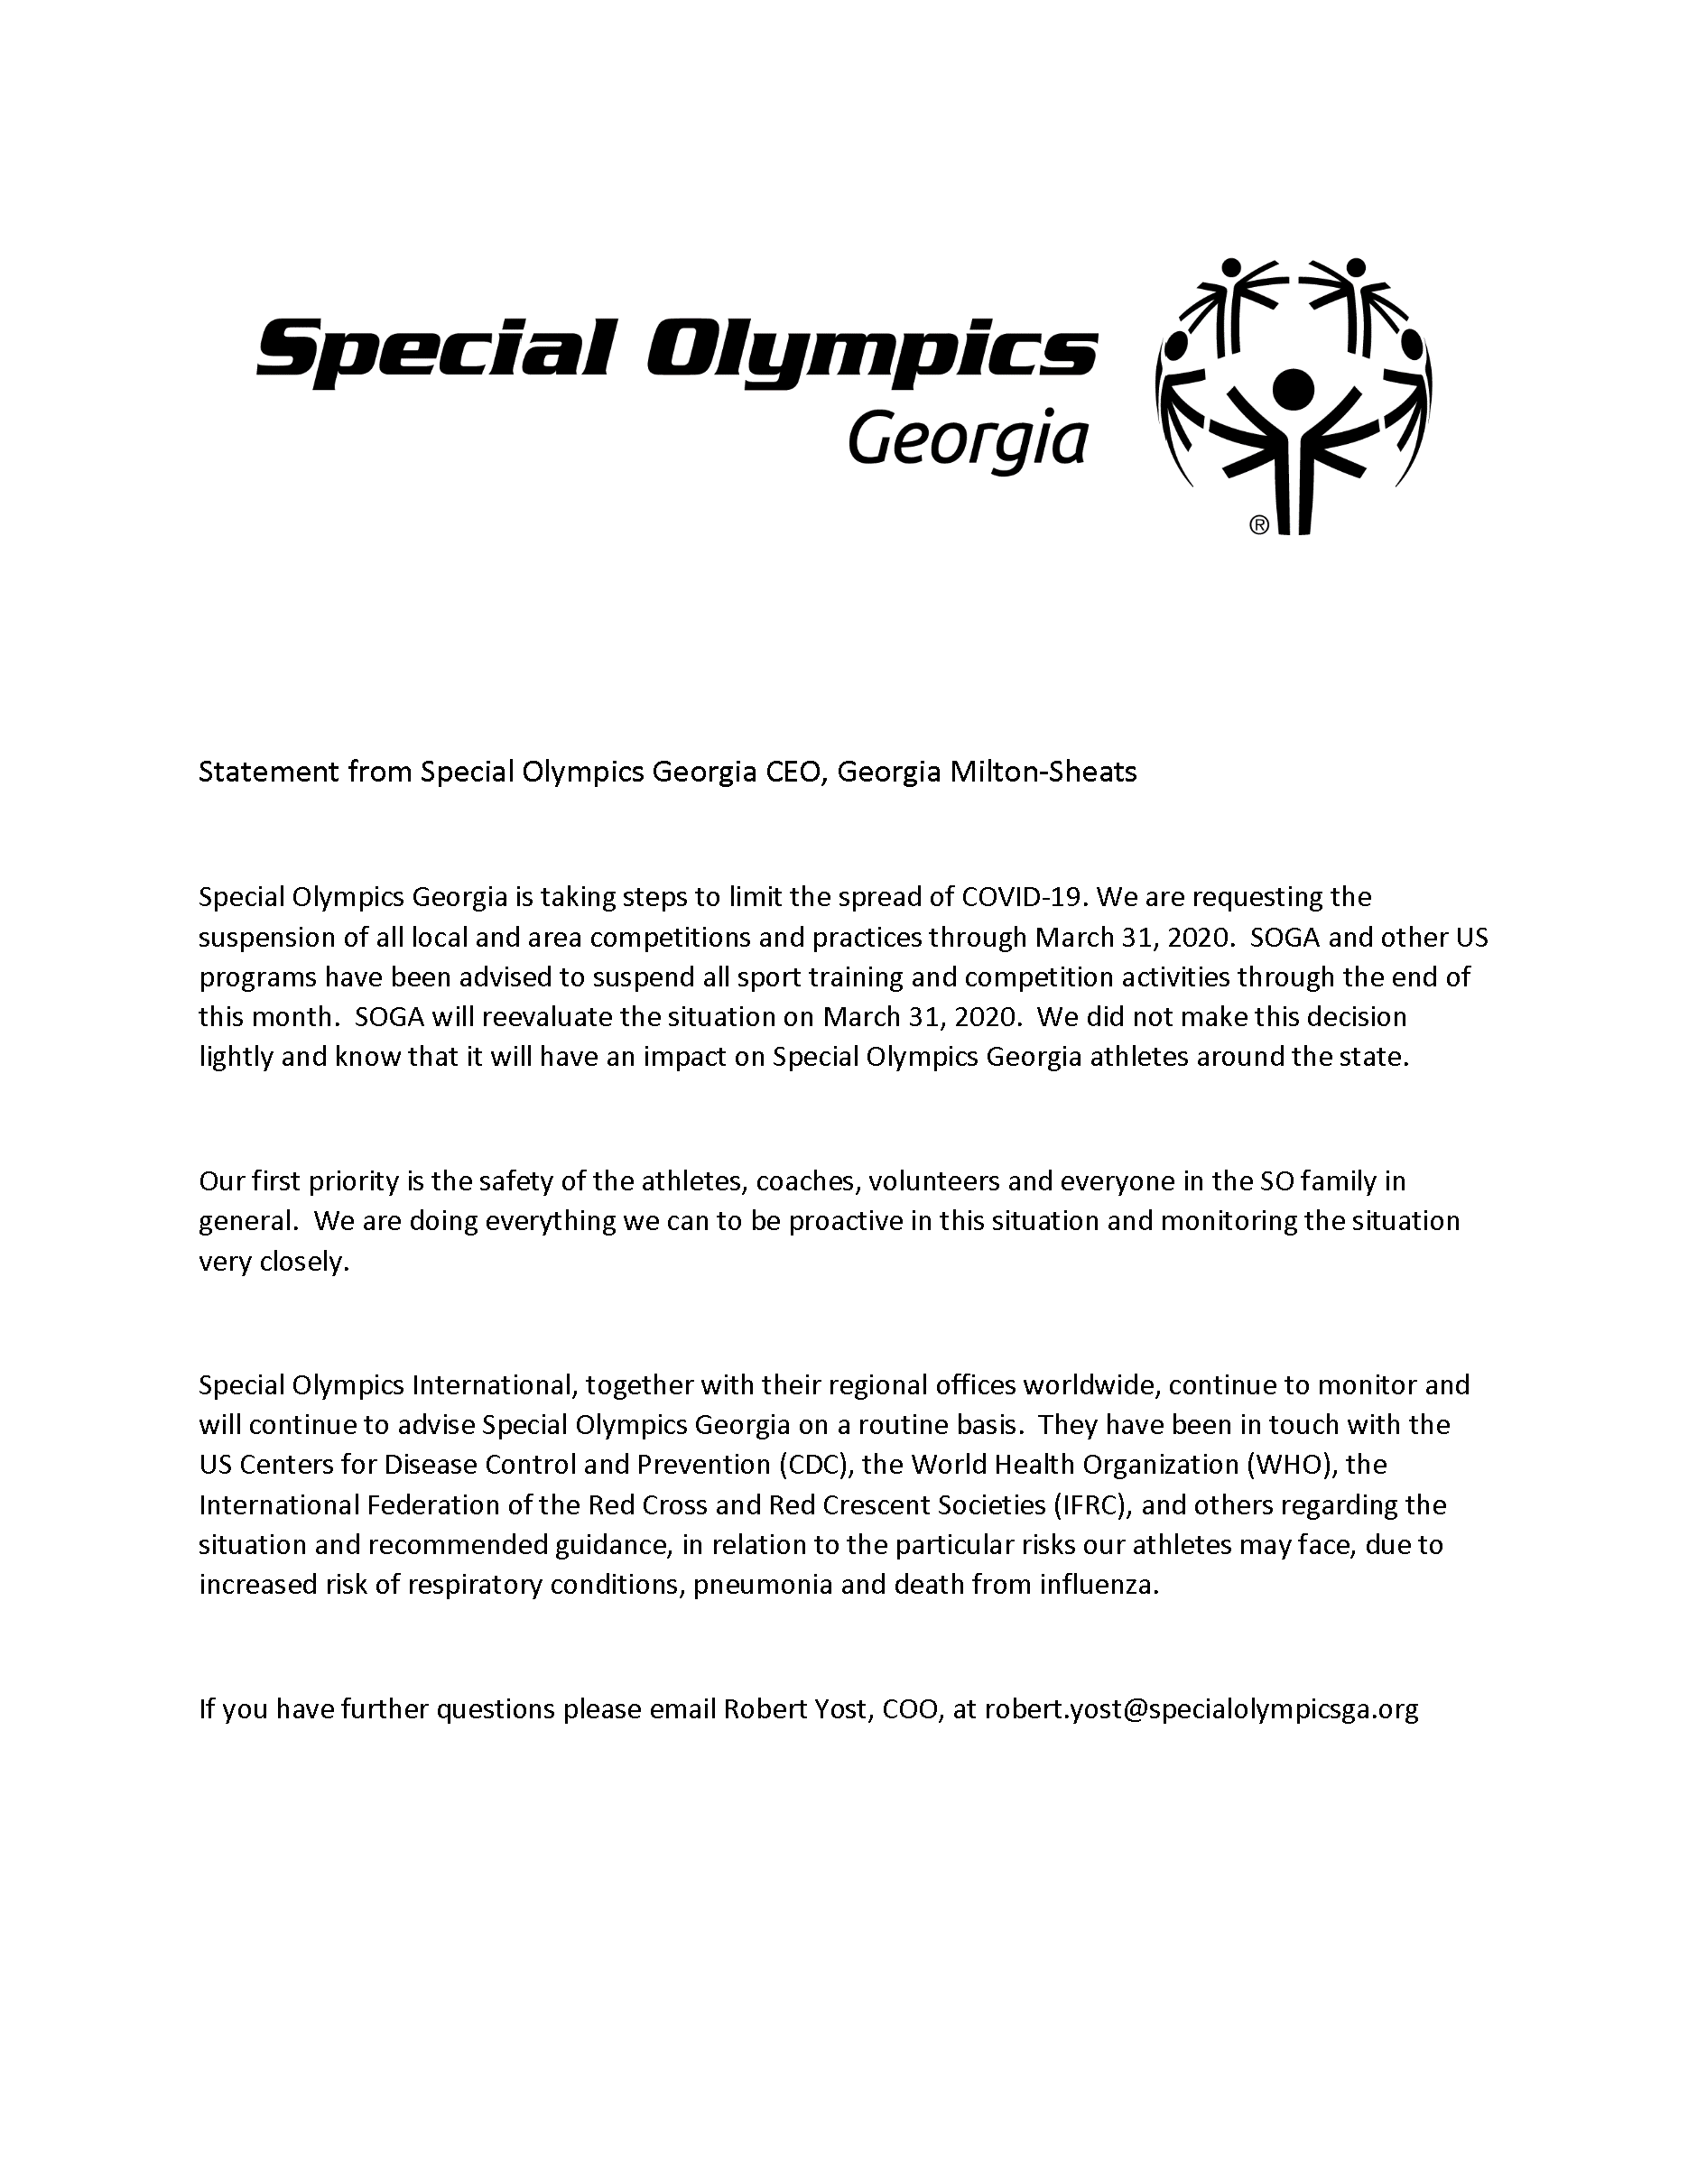 Letter about suspension of special olympics